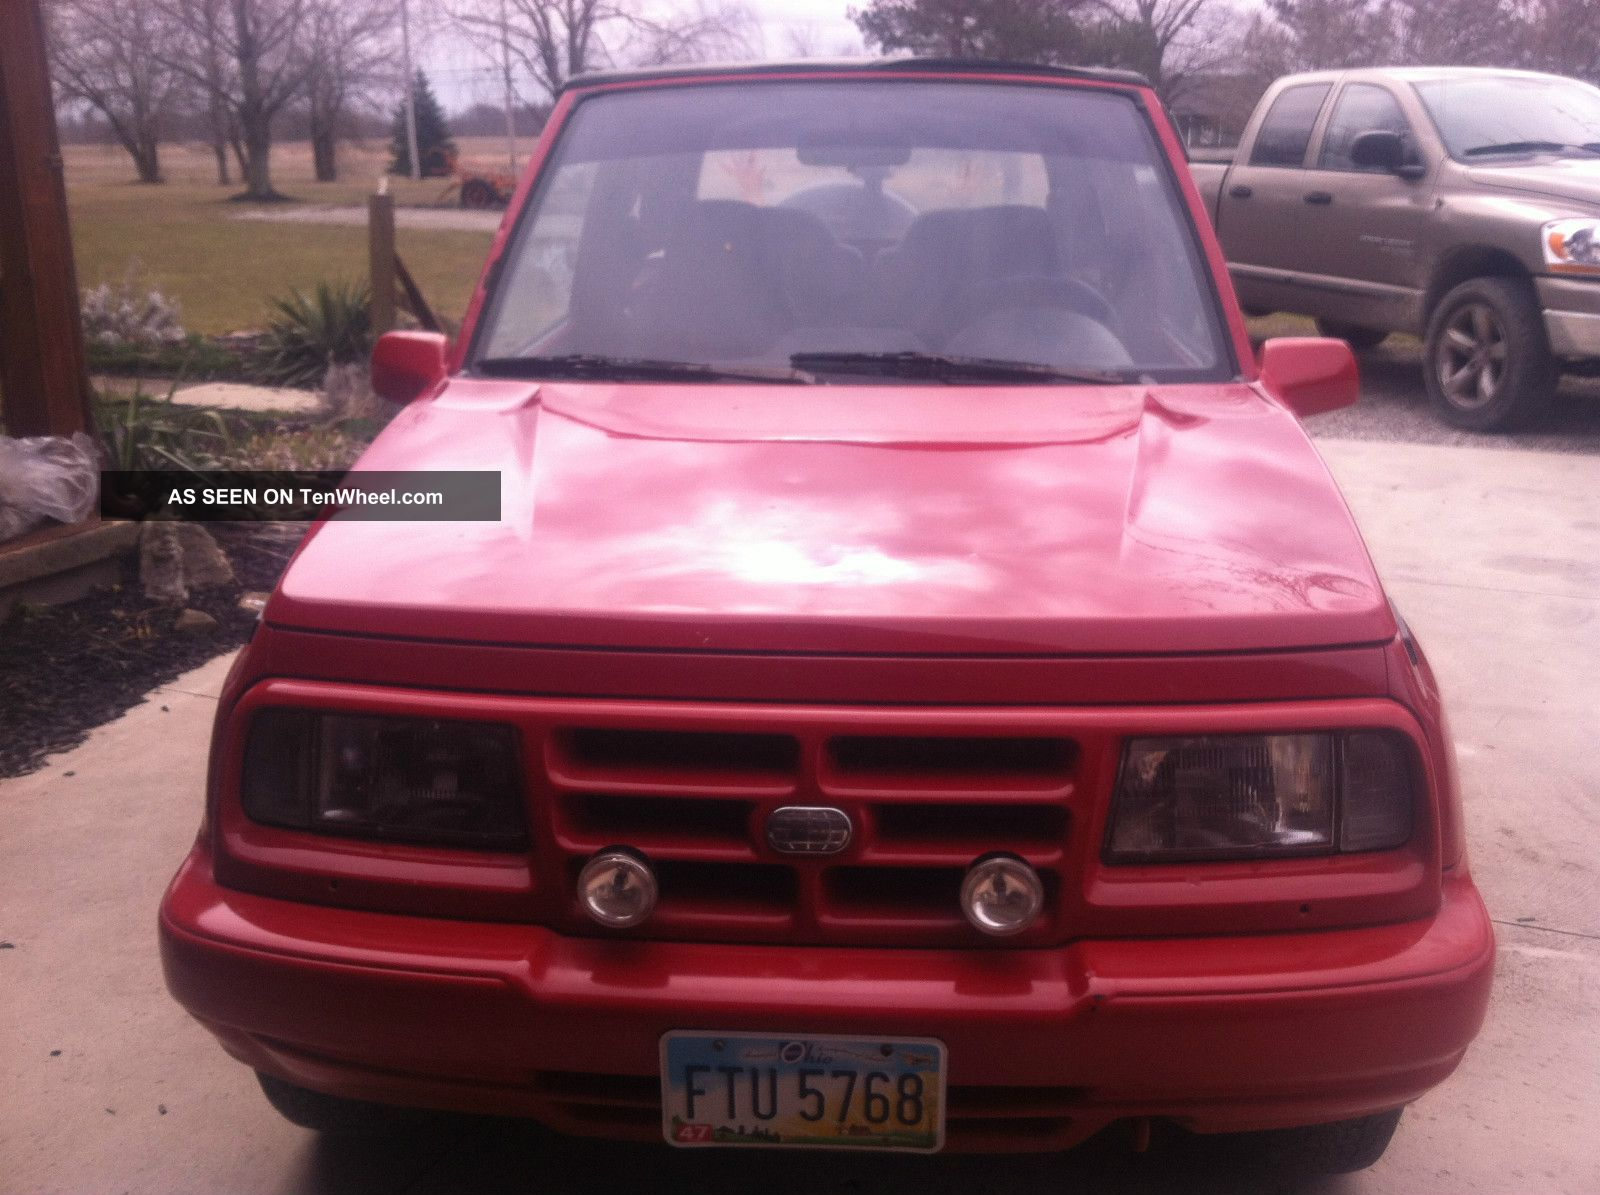 Metra Ford Ranger 2008 Wire Harness together with Uce 350 Service Manual additionally Project Samsquanch Vinnie Barbones Drag Week 1995 Geo Tracker furthermore 125902 as well Ford F 450 Fuel Pump. on geo tracker street rod